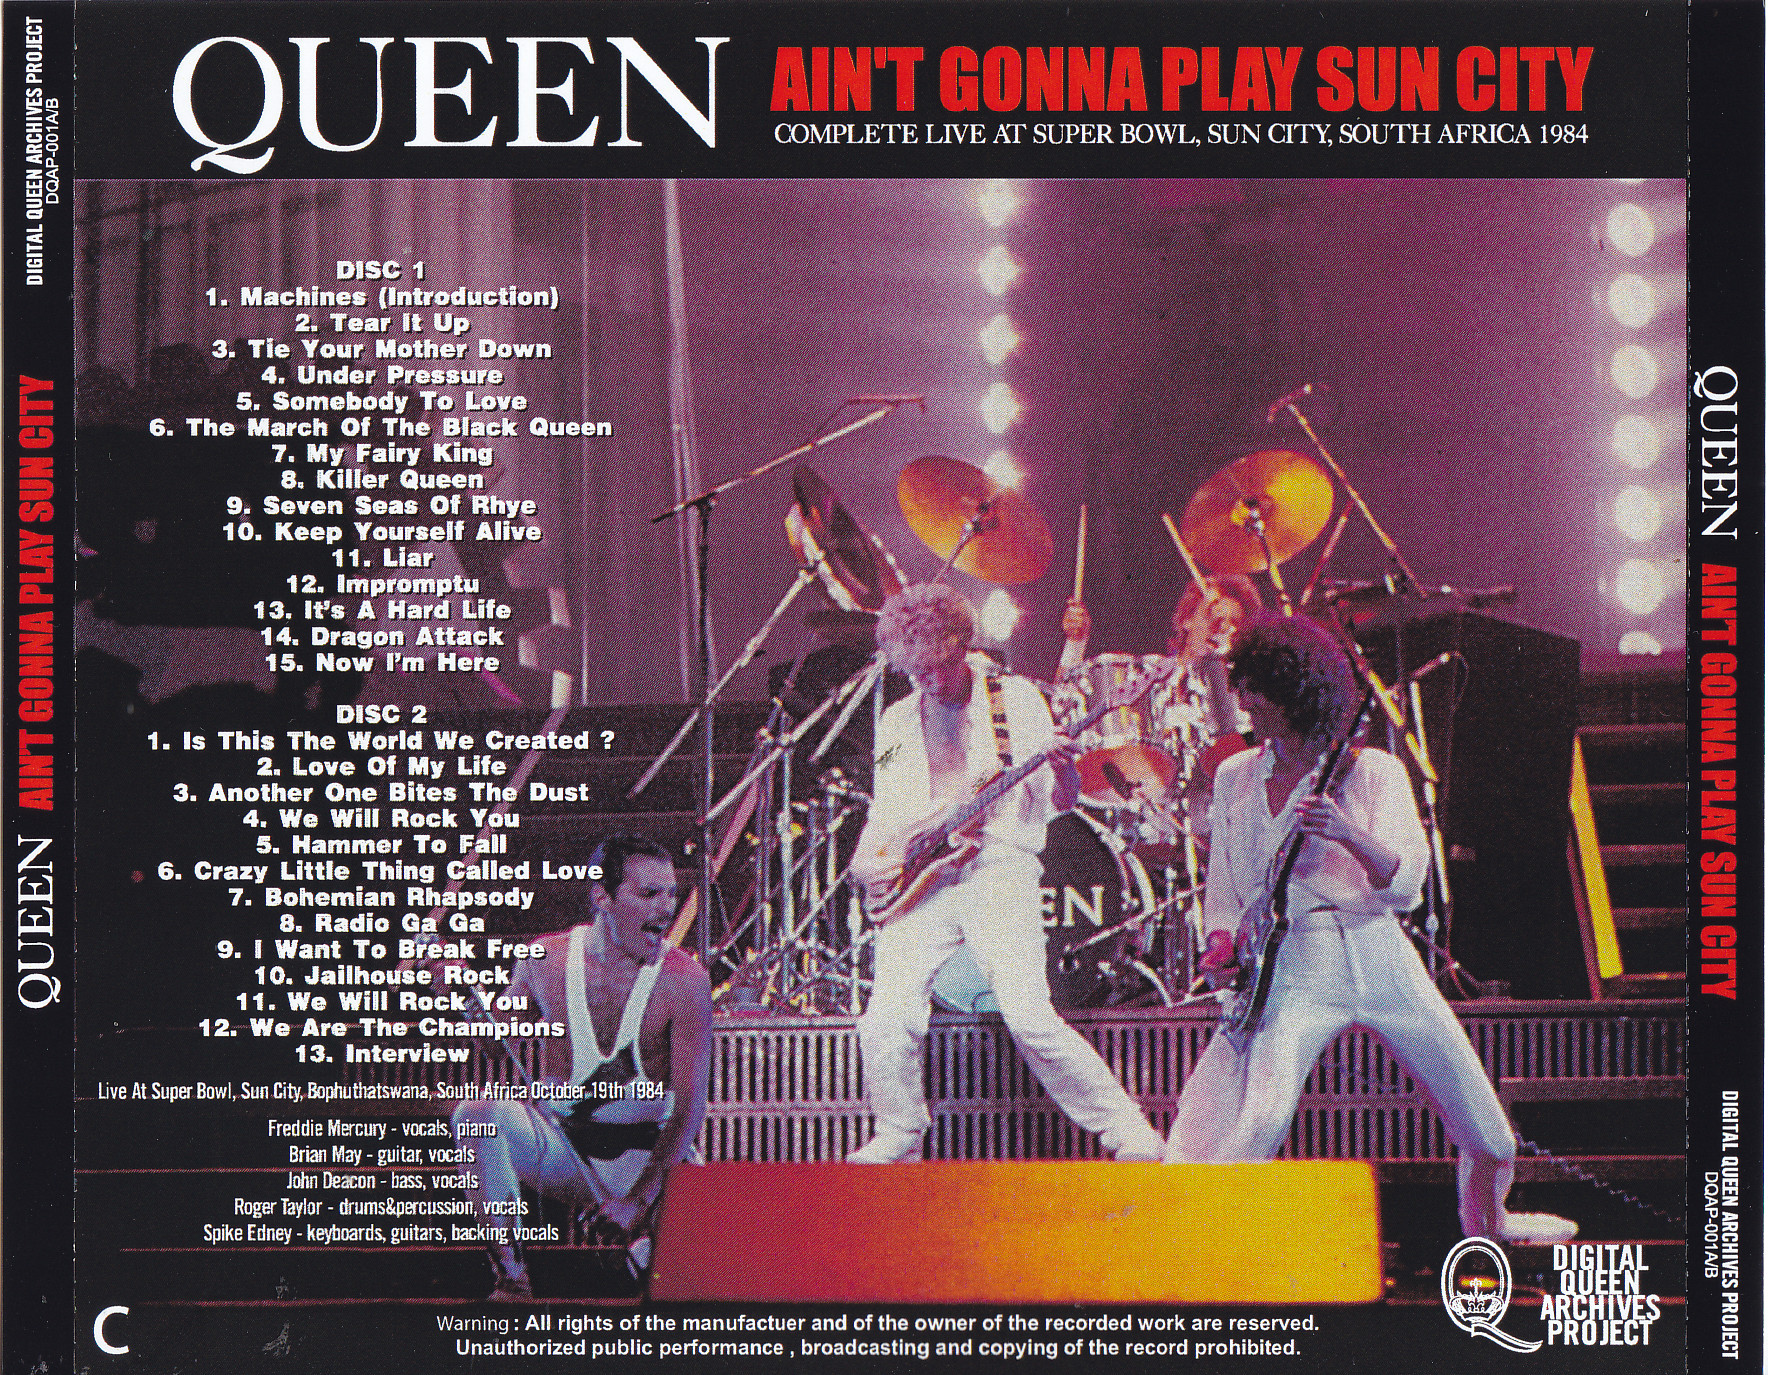 Queen - Aint Gonna Play Sun City (2Pro-CDR) Digital Queen Archives  Project DQAP-001A/B